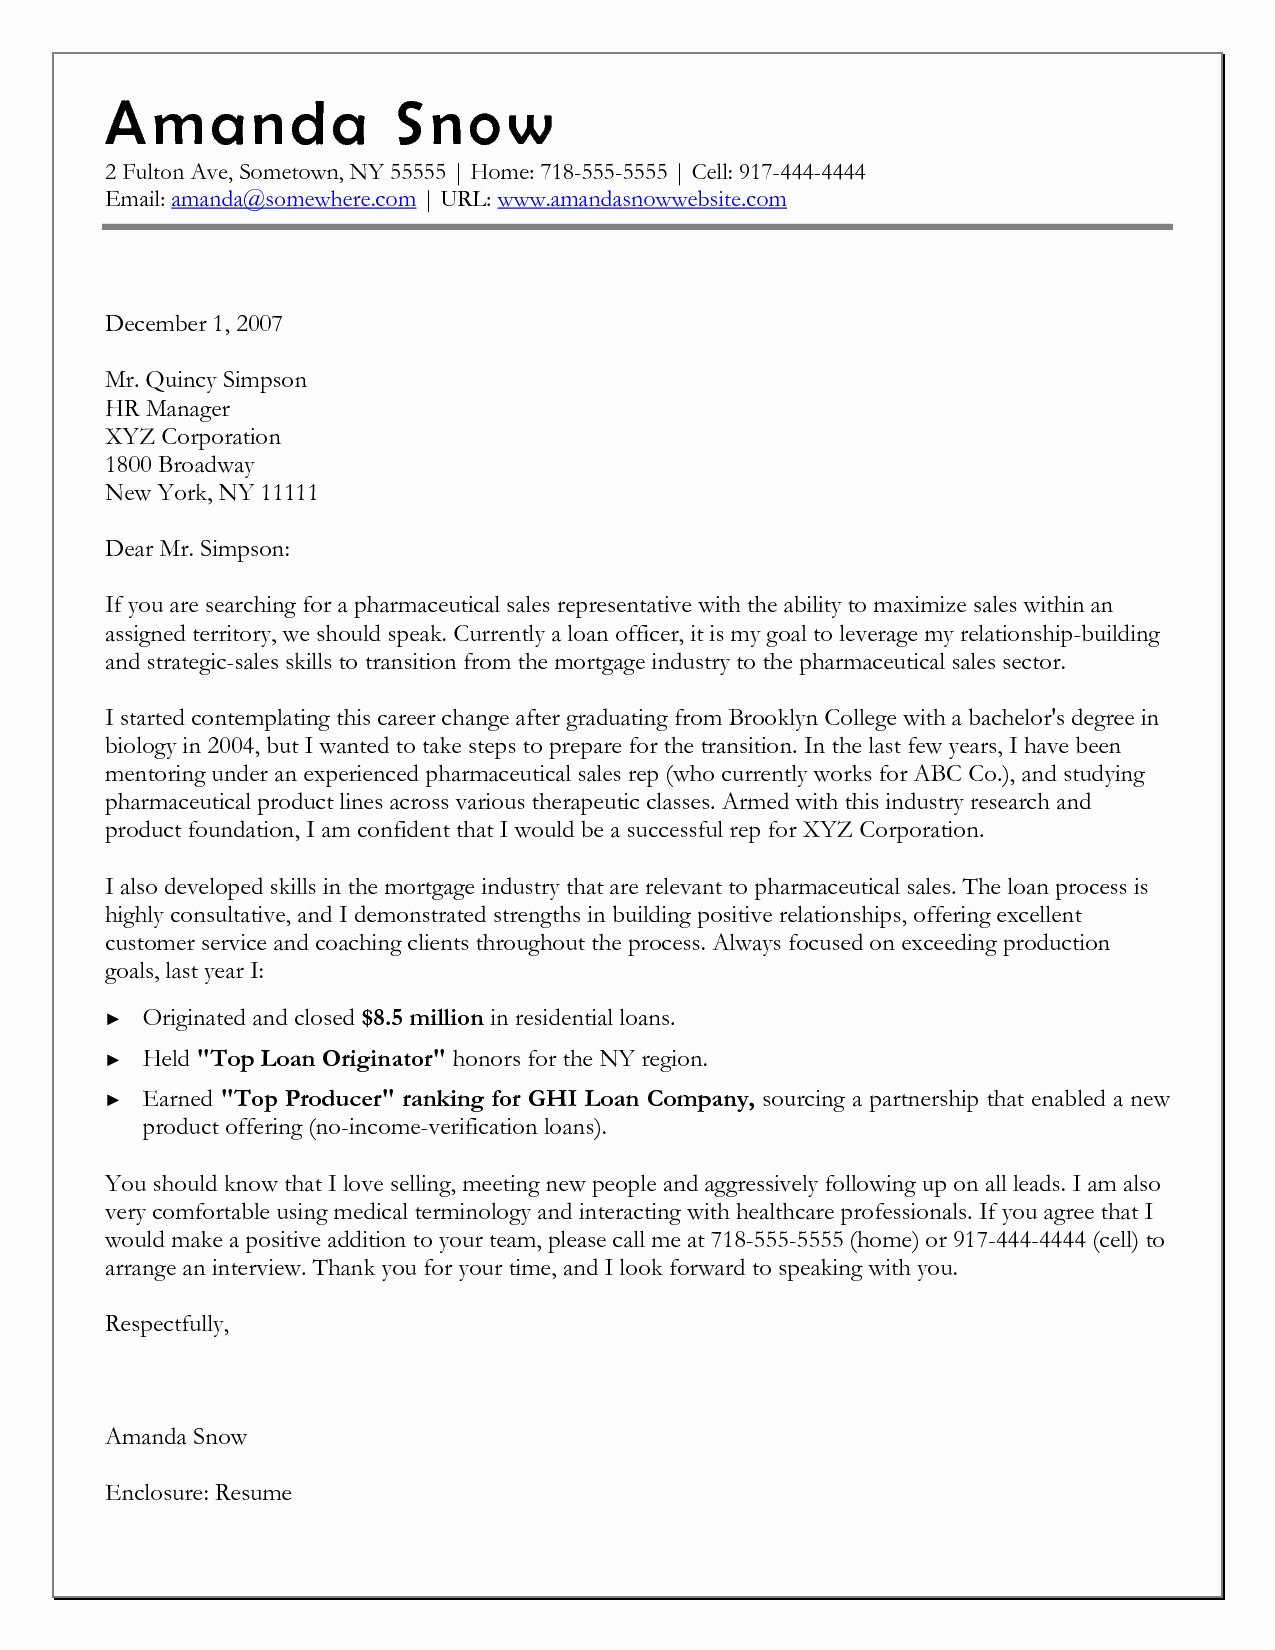 Career Change Cover Letter Samples Fresh Cover Letter Template when Changing Careers